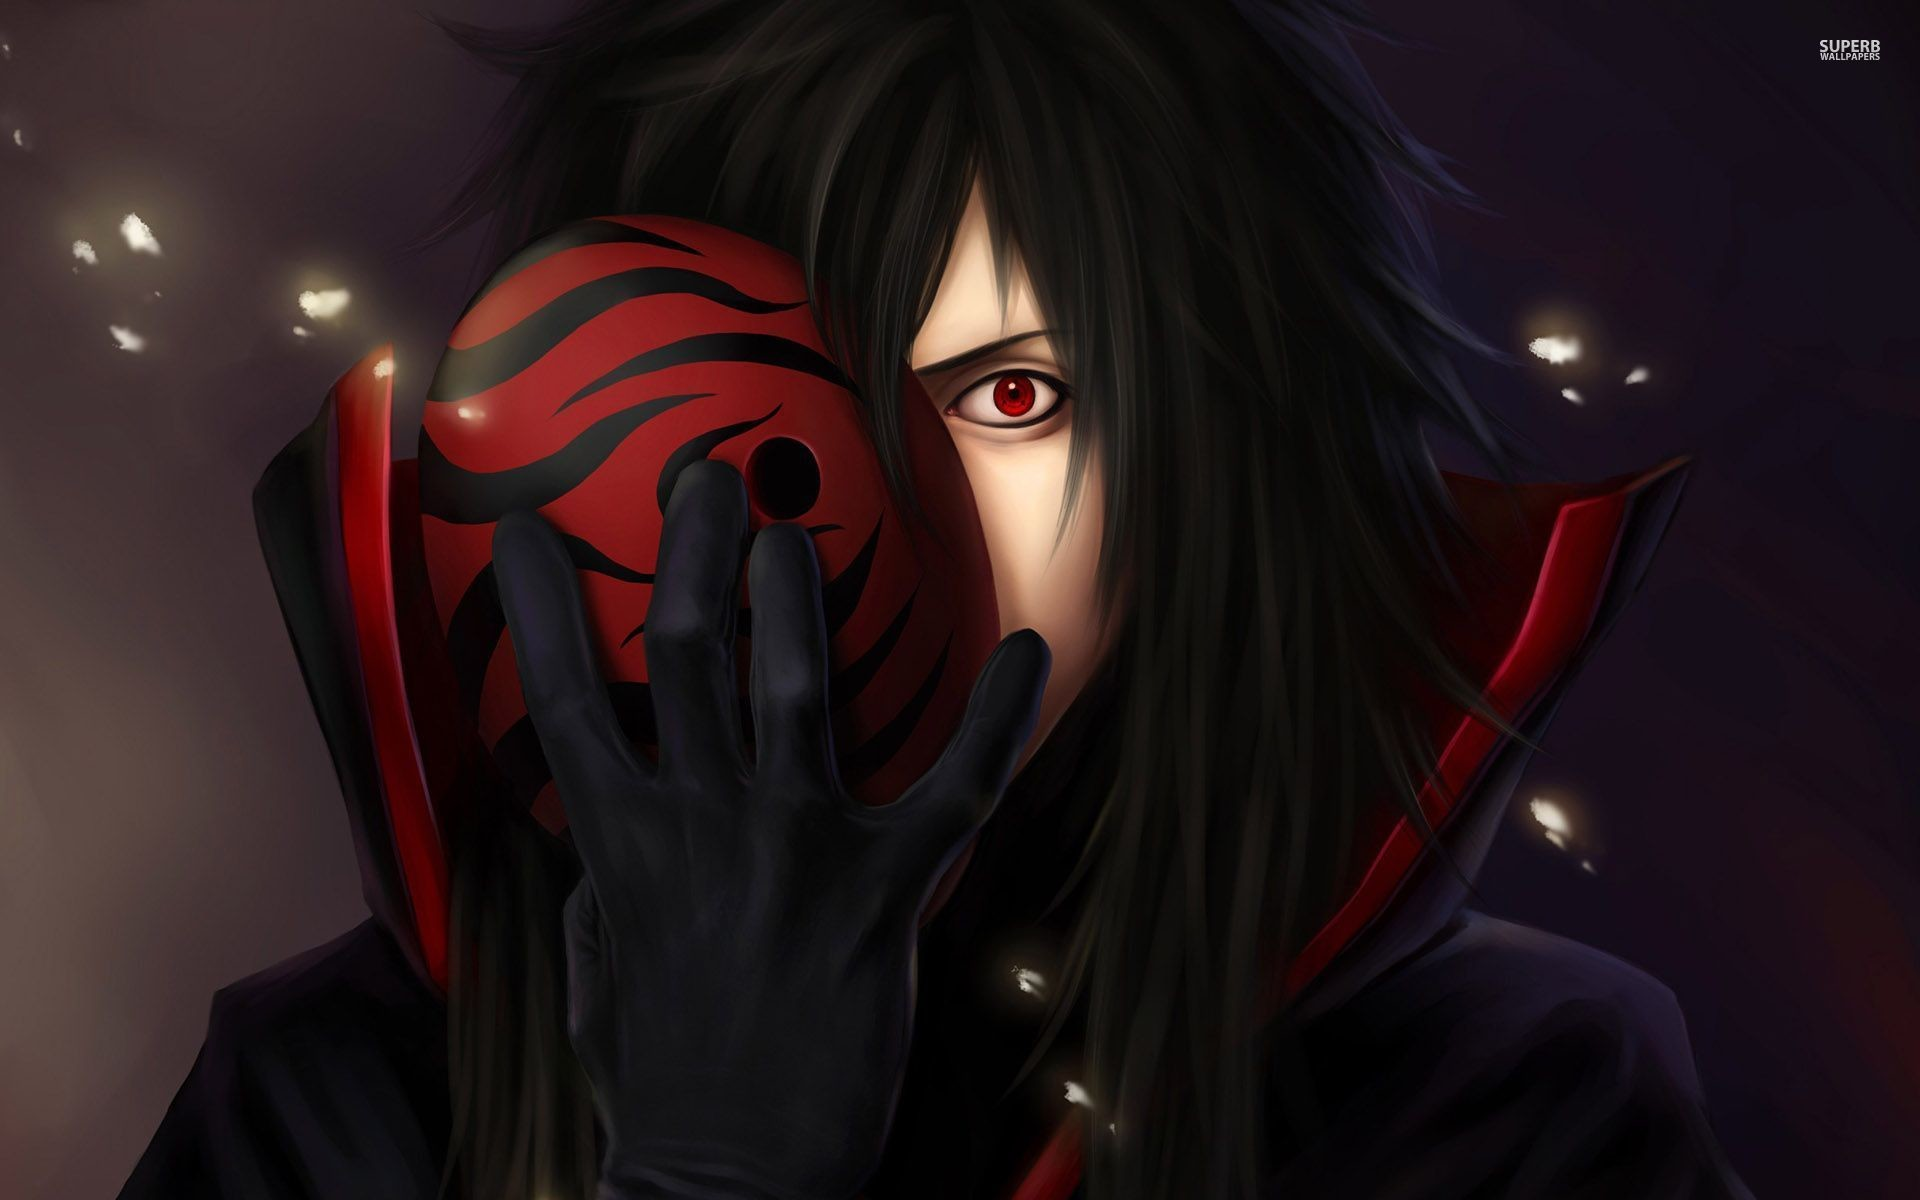 Res: 1920x1200, A37 Naruto Madara Uchiha anime HD Desktop background images pictures  wallpapers downloads